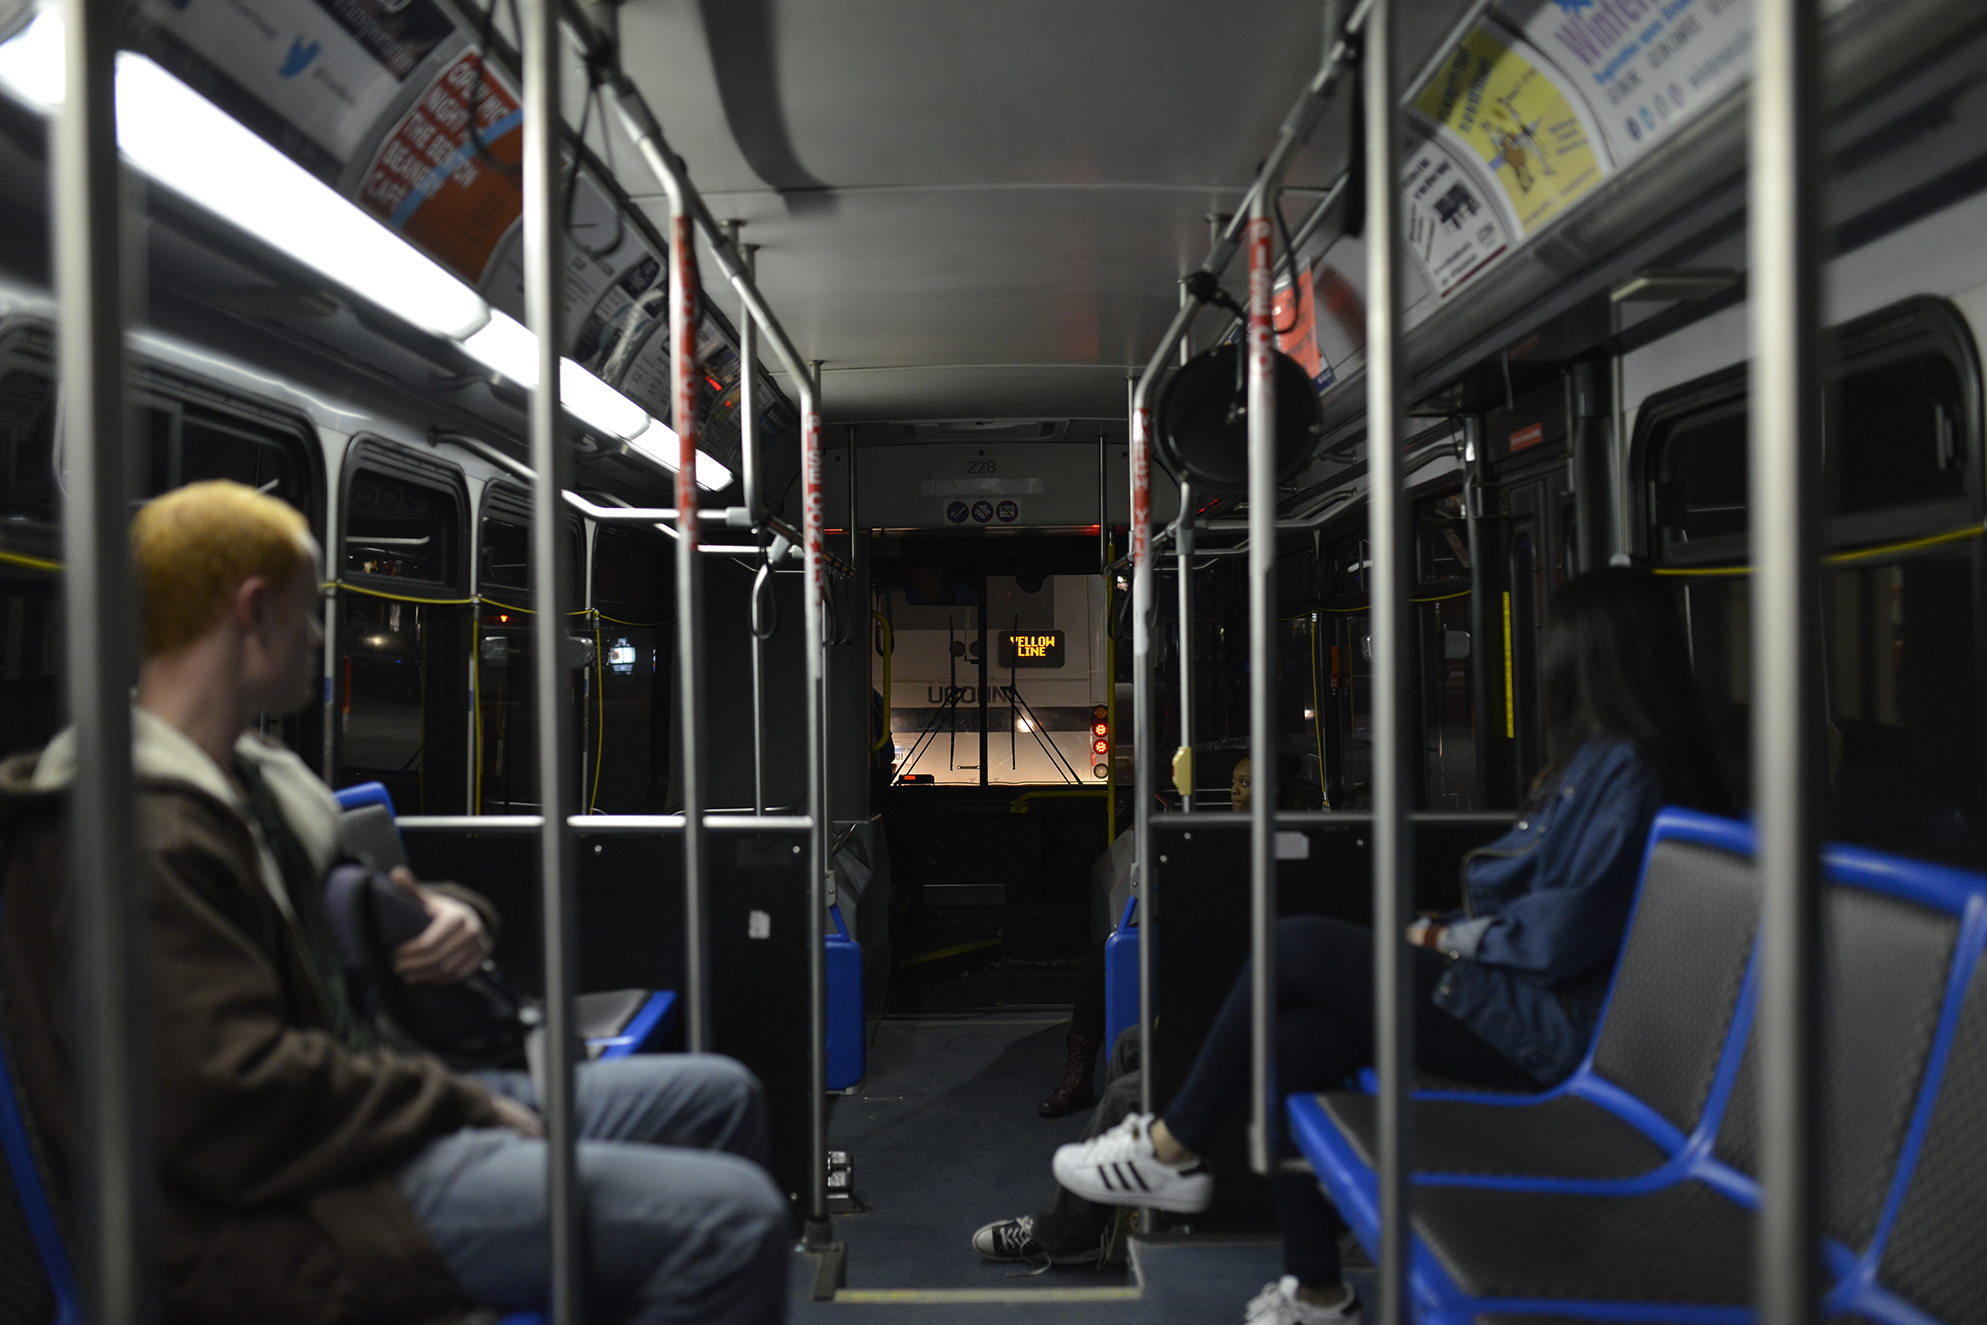 """The University of Connecticut's Transportation Services removed the radios from all 19 of its passenger buses at the beginning of October in order to """"reduce potential distractions in the bus,"""" UConn spokesperson Stephanie Reitz said. (Jason Jiang/The Daily Campus)"""